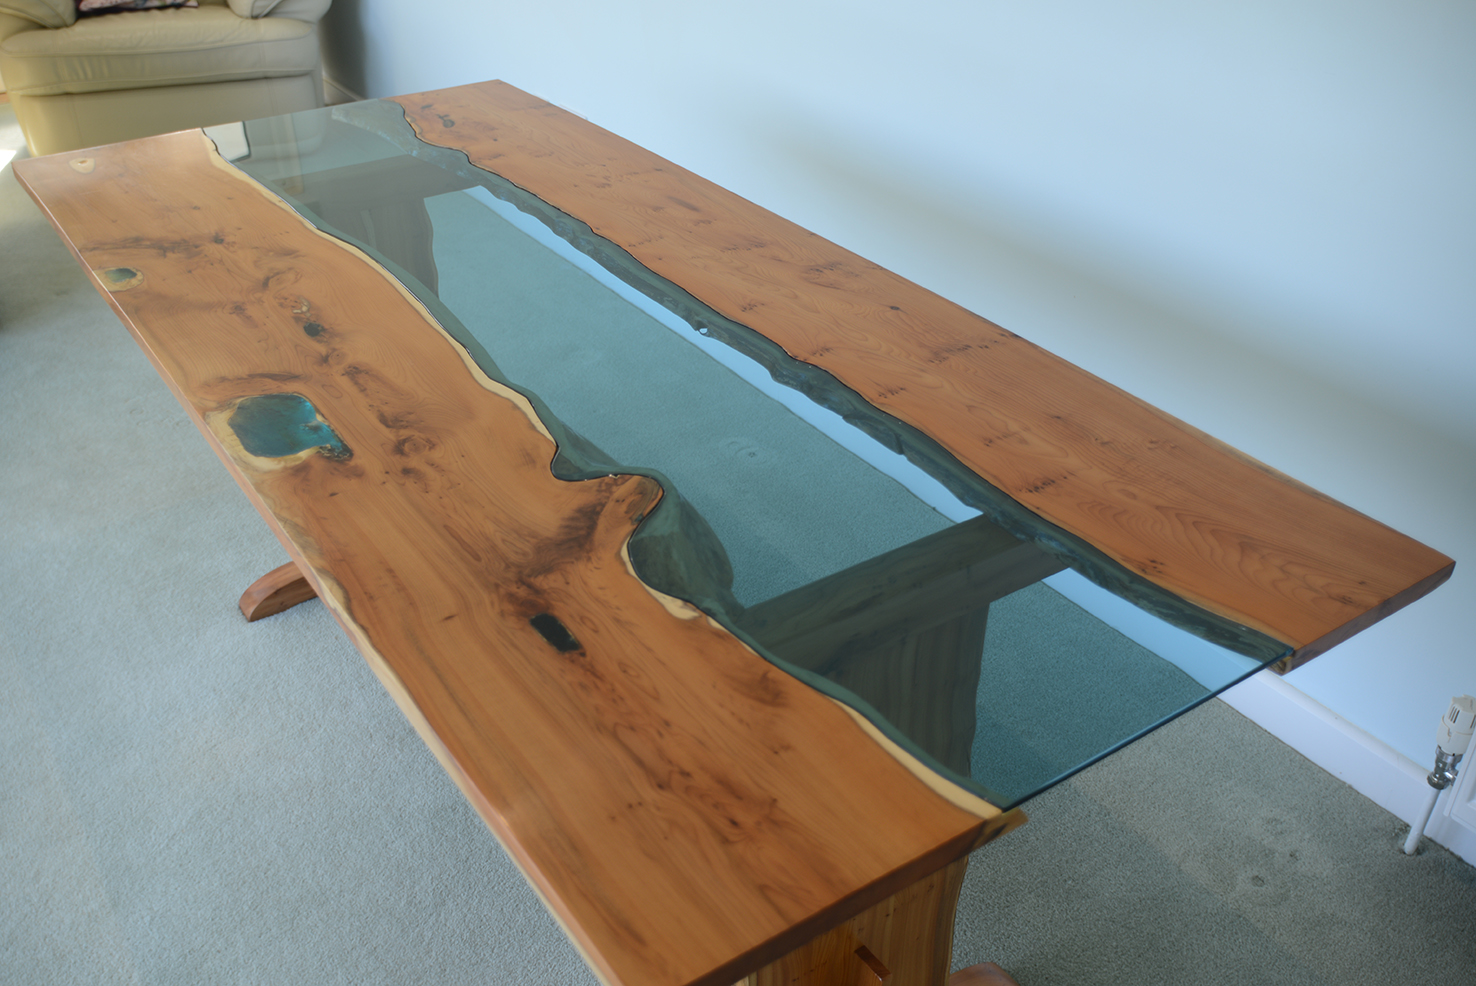 Bespoke Tinted Glass Table Top